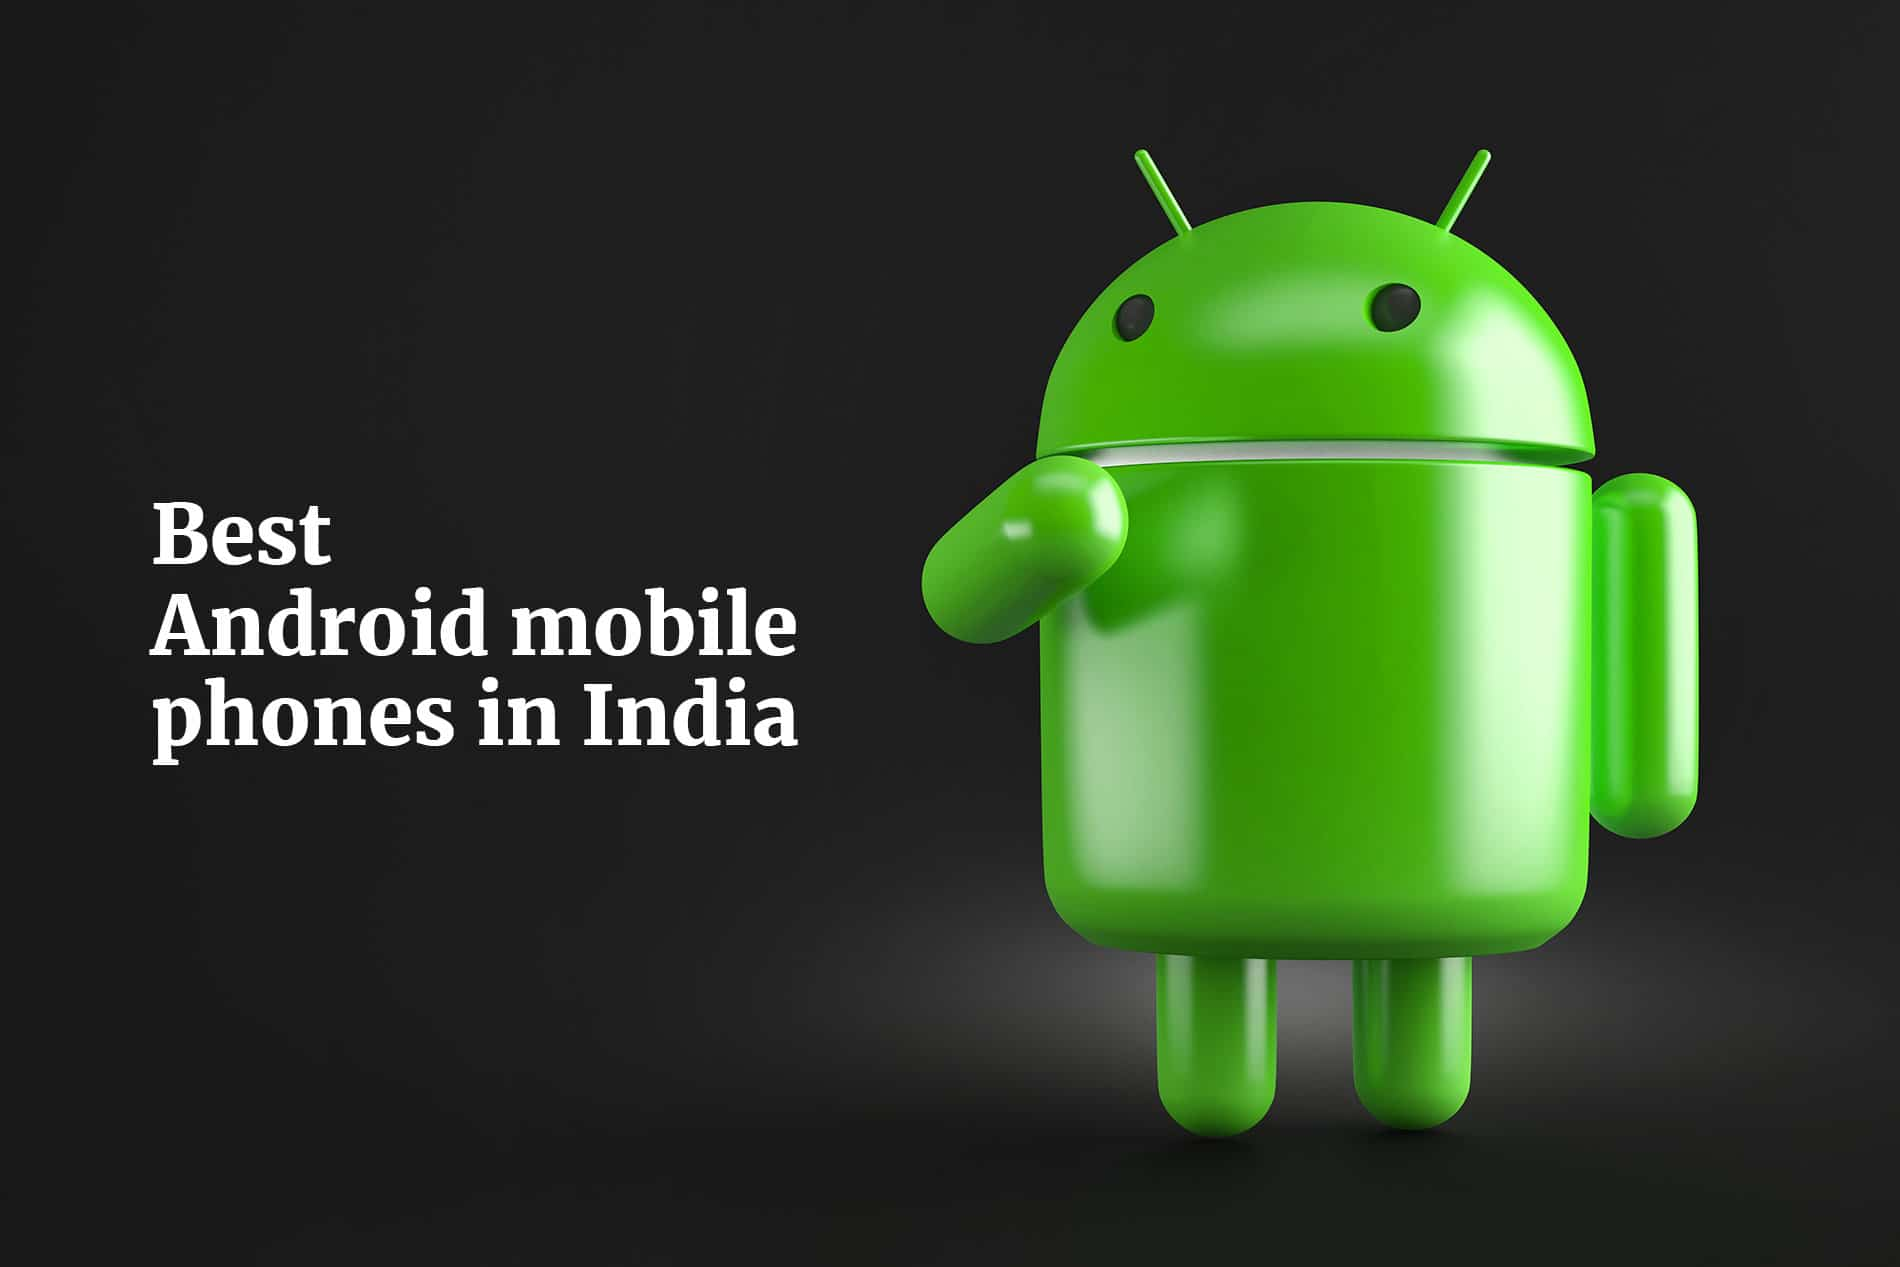 Android mobile phones